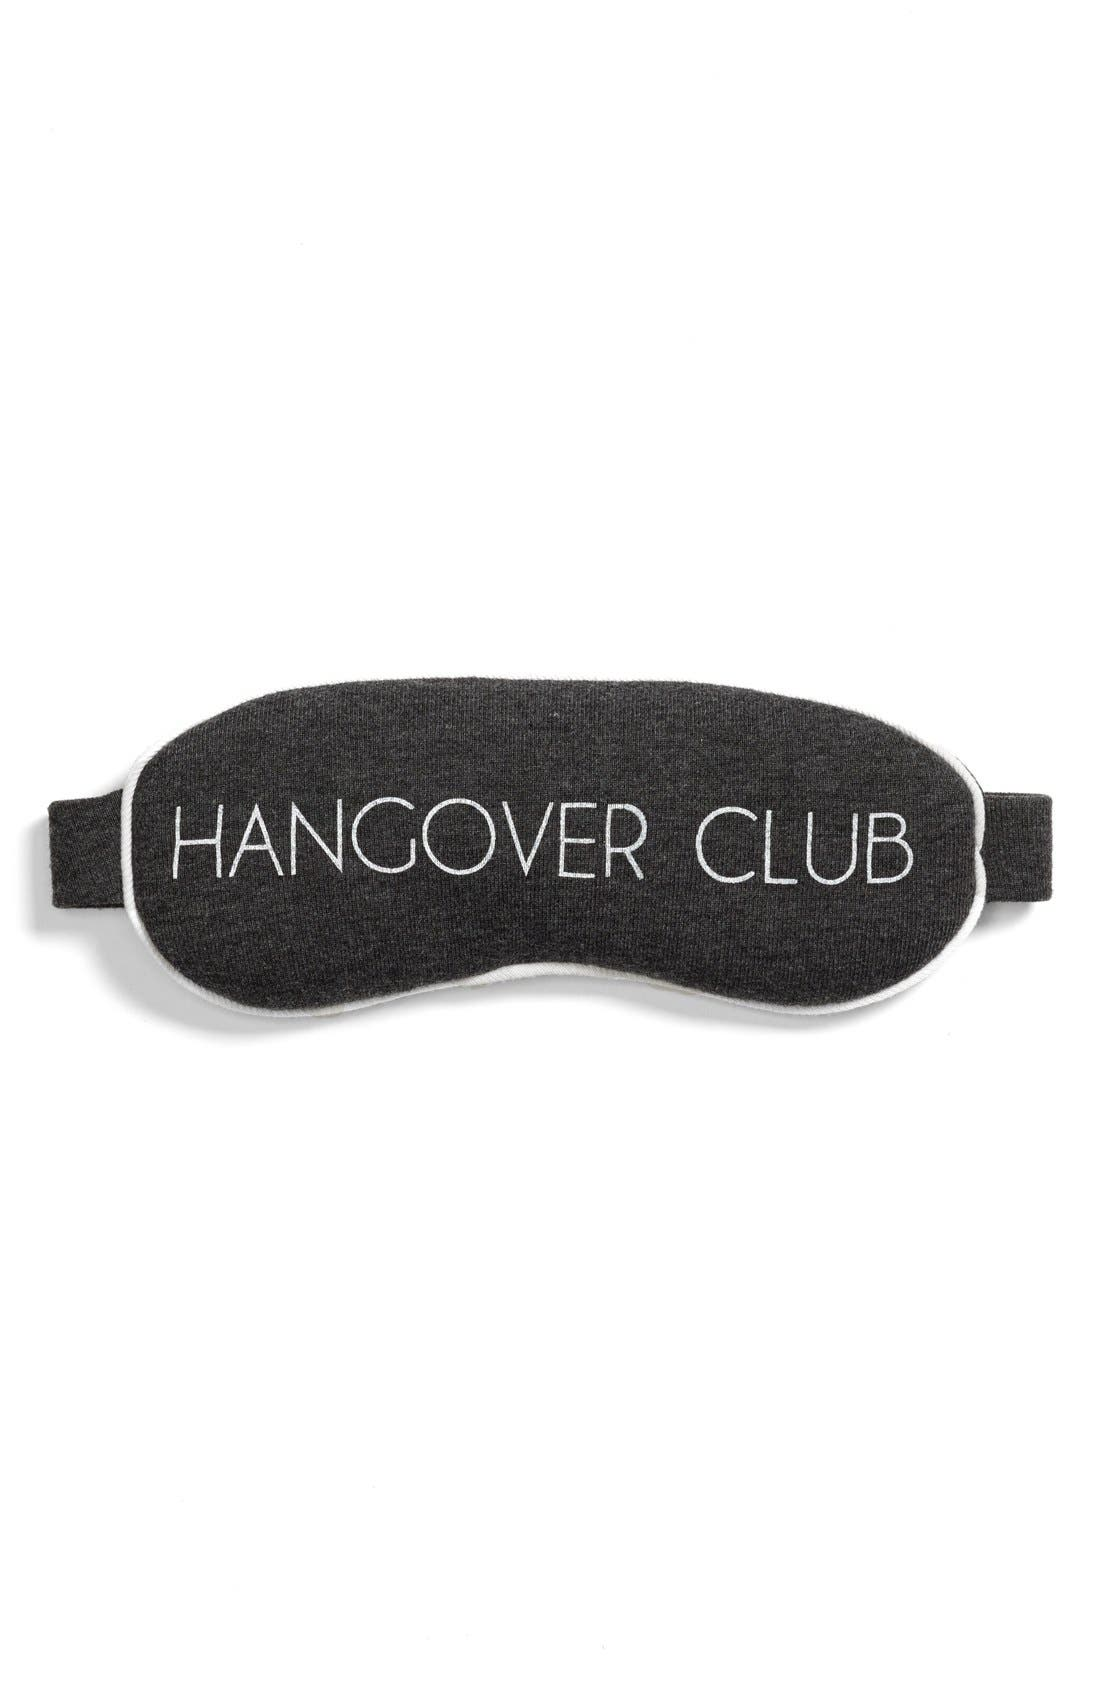 Alternate Image 1 Selected - Wildfox 'Hangover Club' Sleep Mask